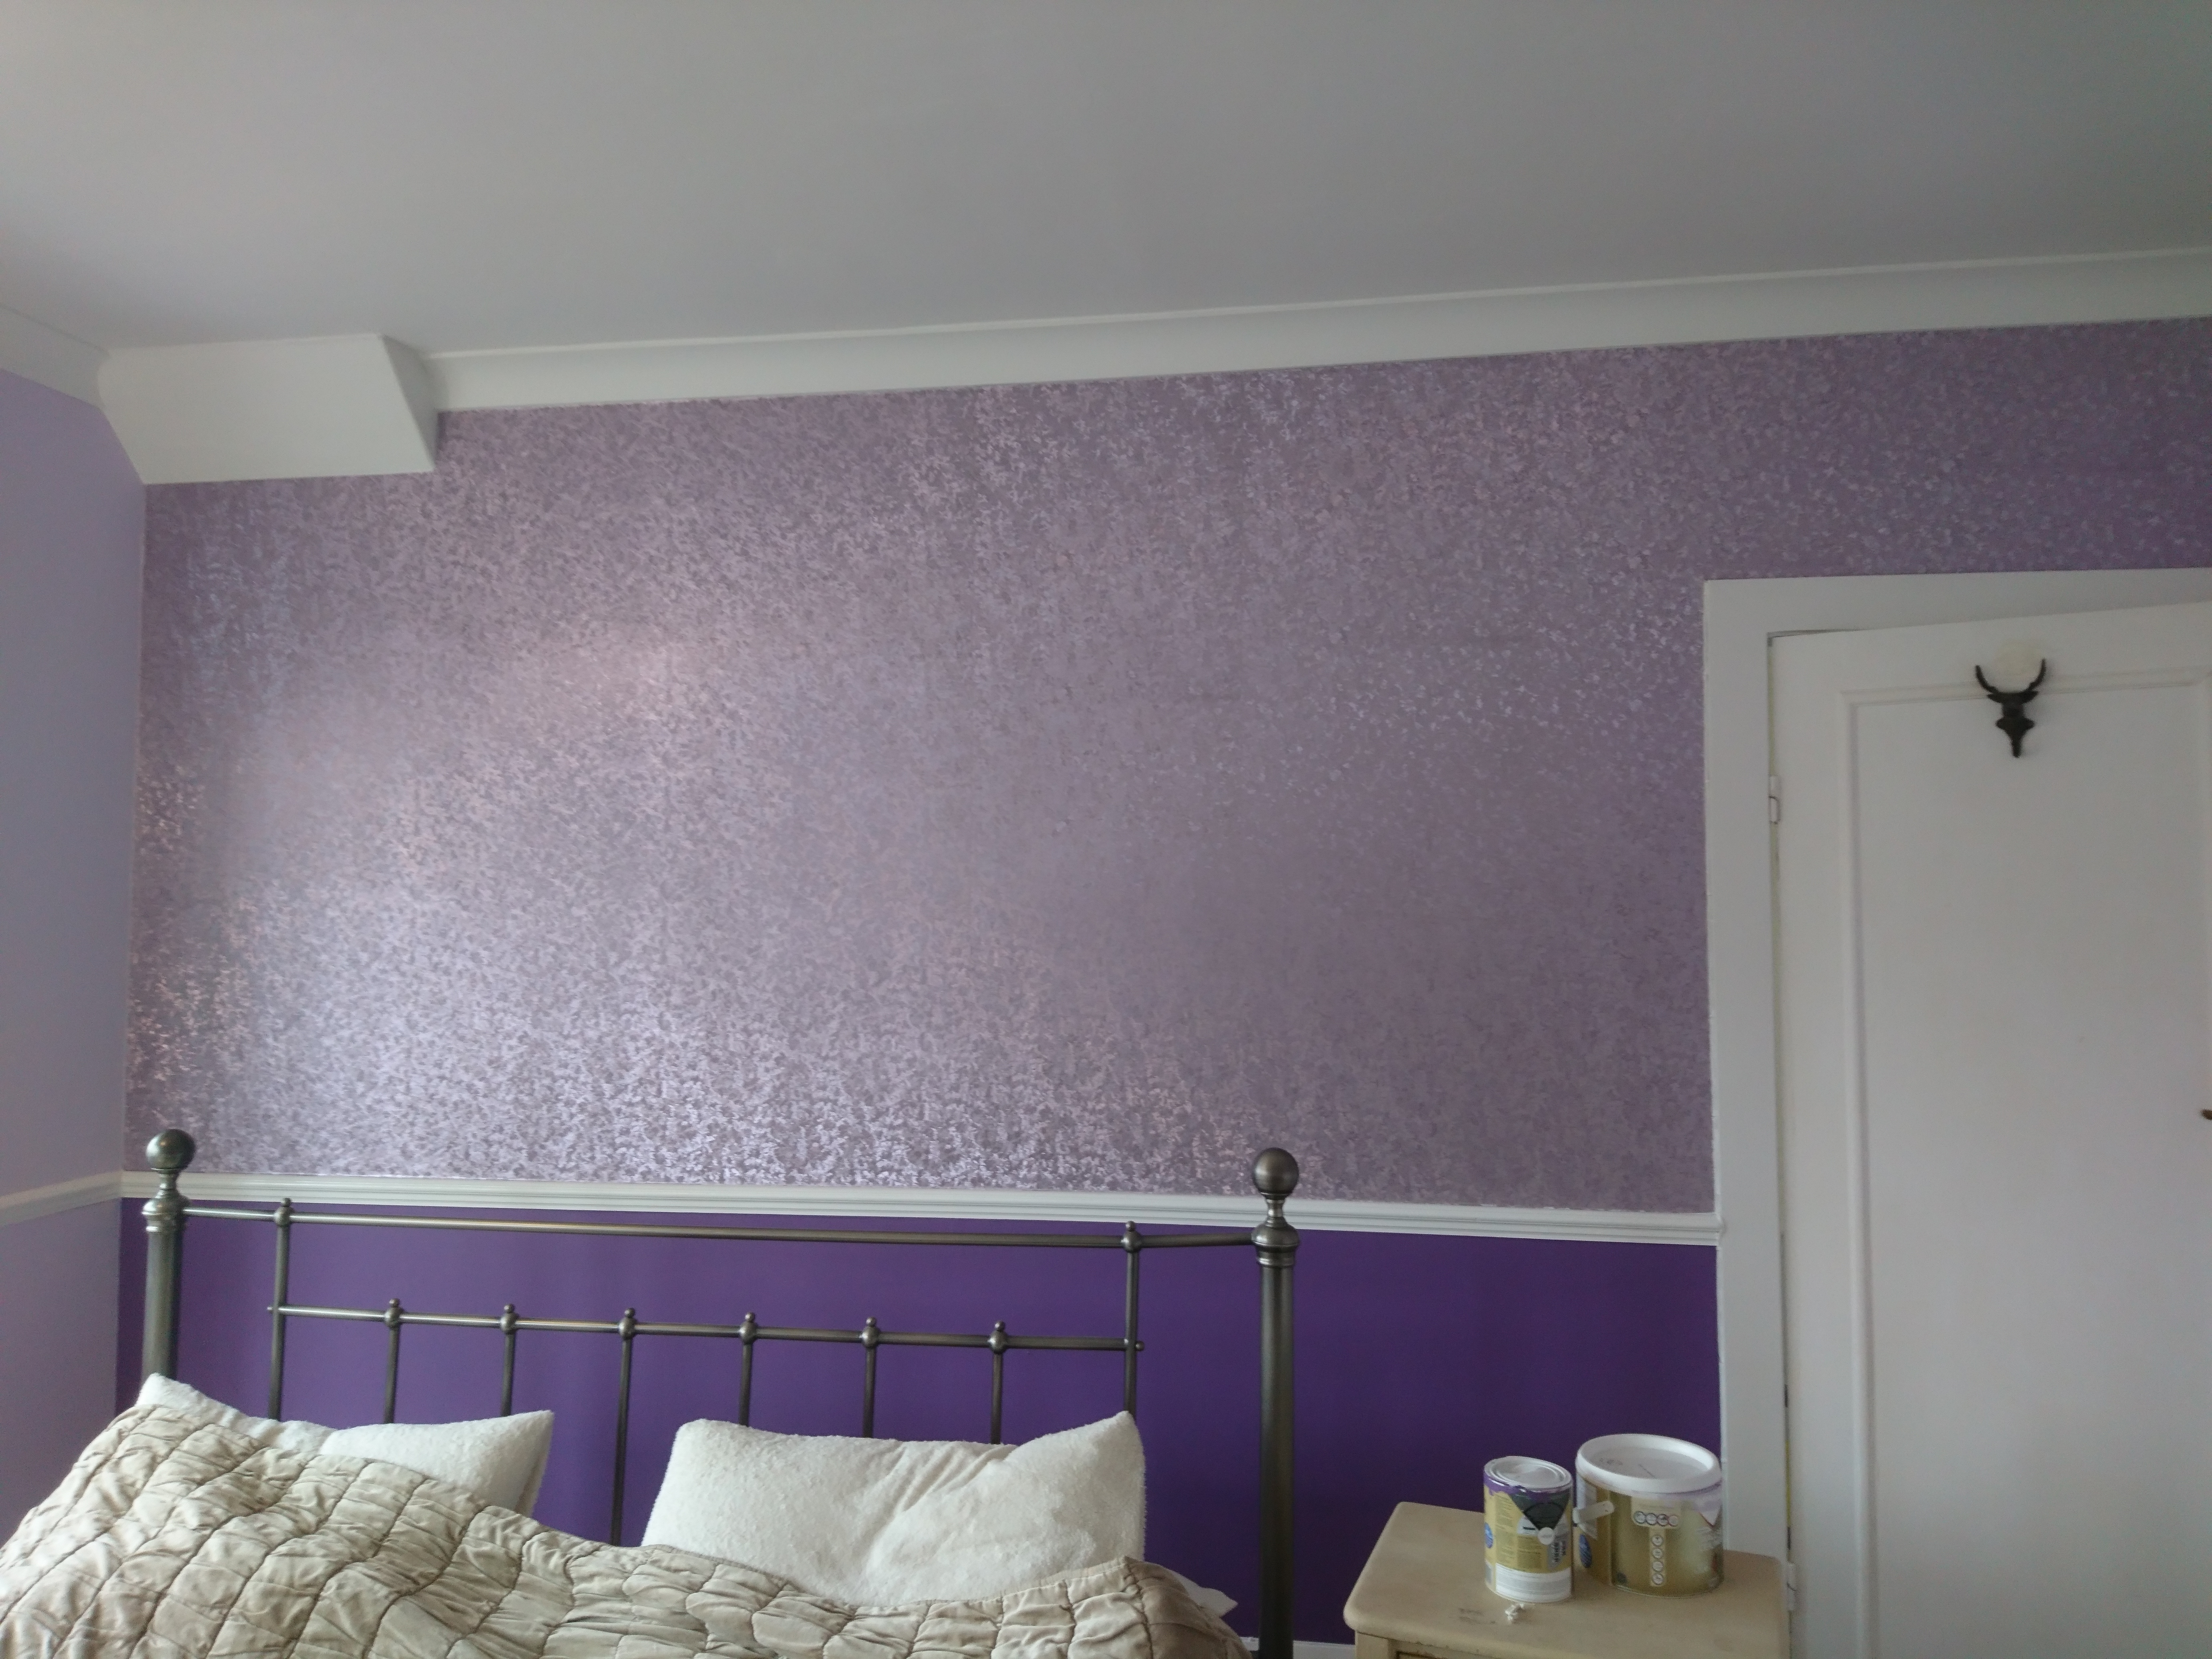 Micaela Leadbeater female painter And decorator | 45 Ewart Street, 45, Scarborough YO12 4EP | +44 7930 154987